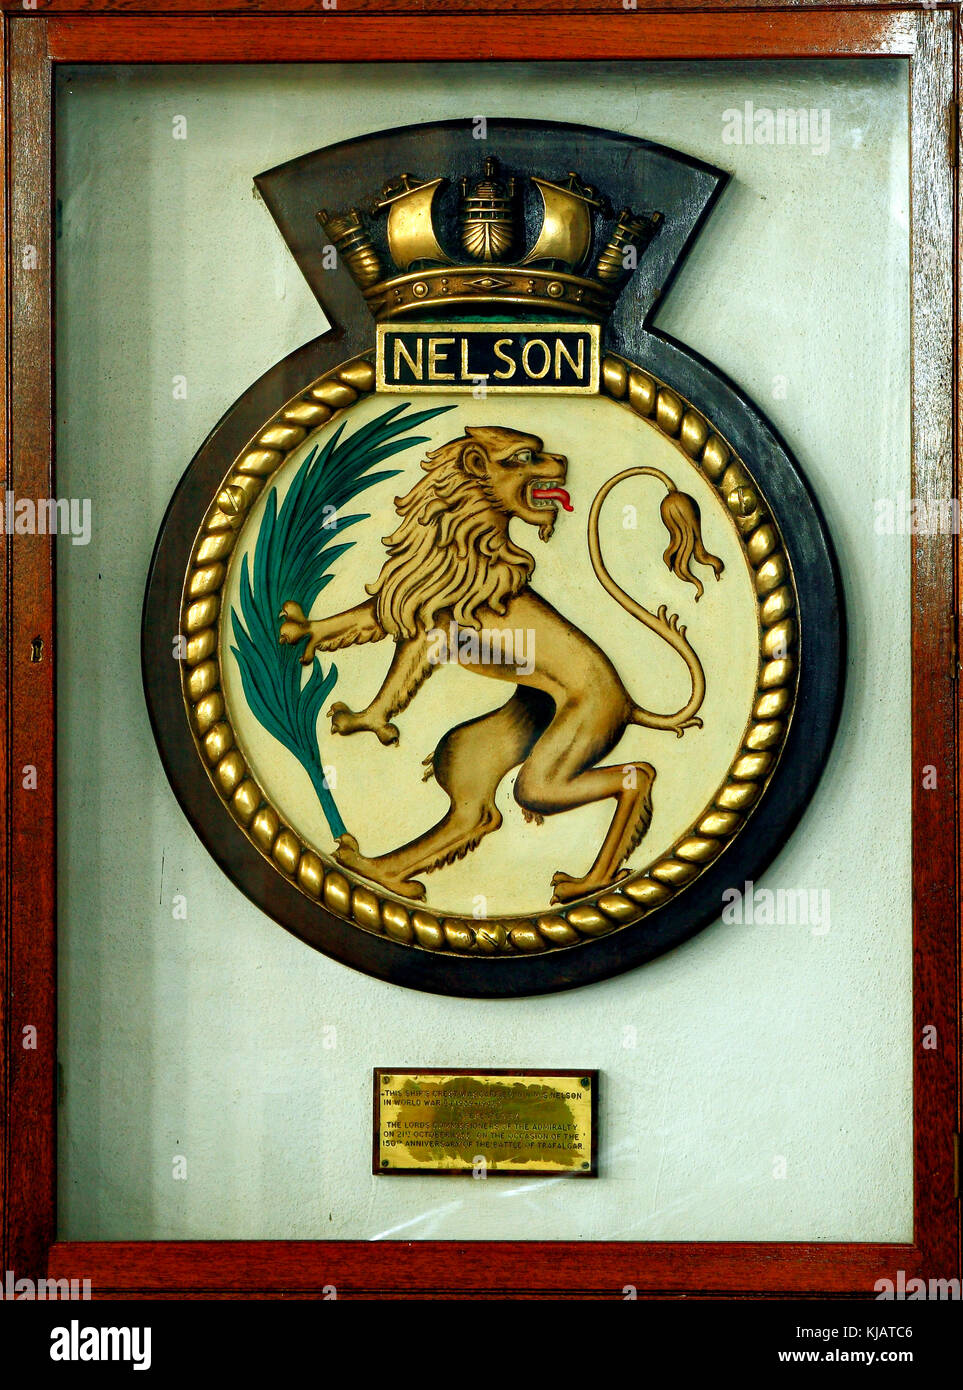 H M S Nelson, ship's crest, carried in HMS Nelson, in World War 2, Burnham Thorpe Church, Norfolk, England, - Stock Image